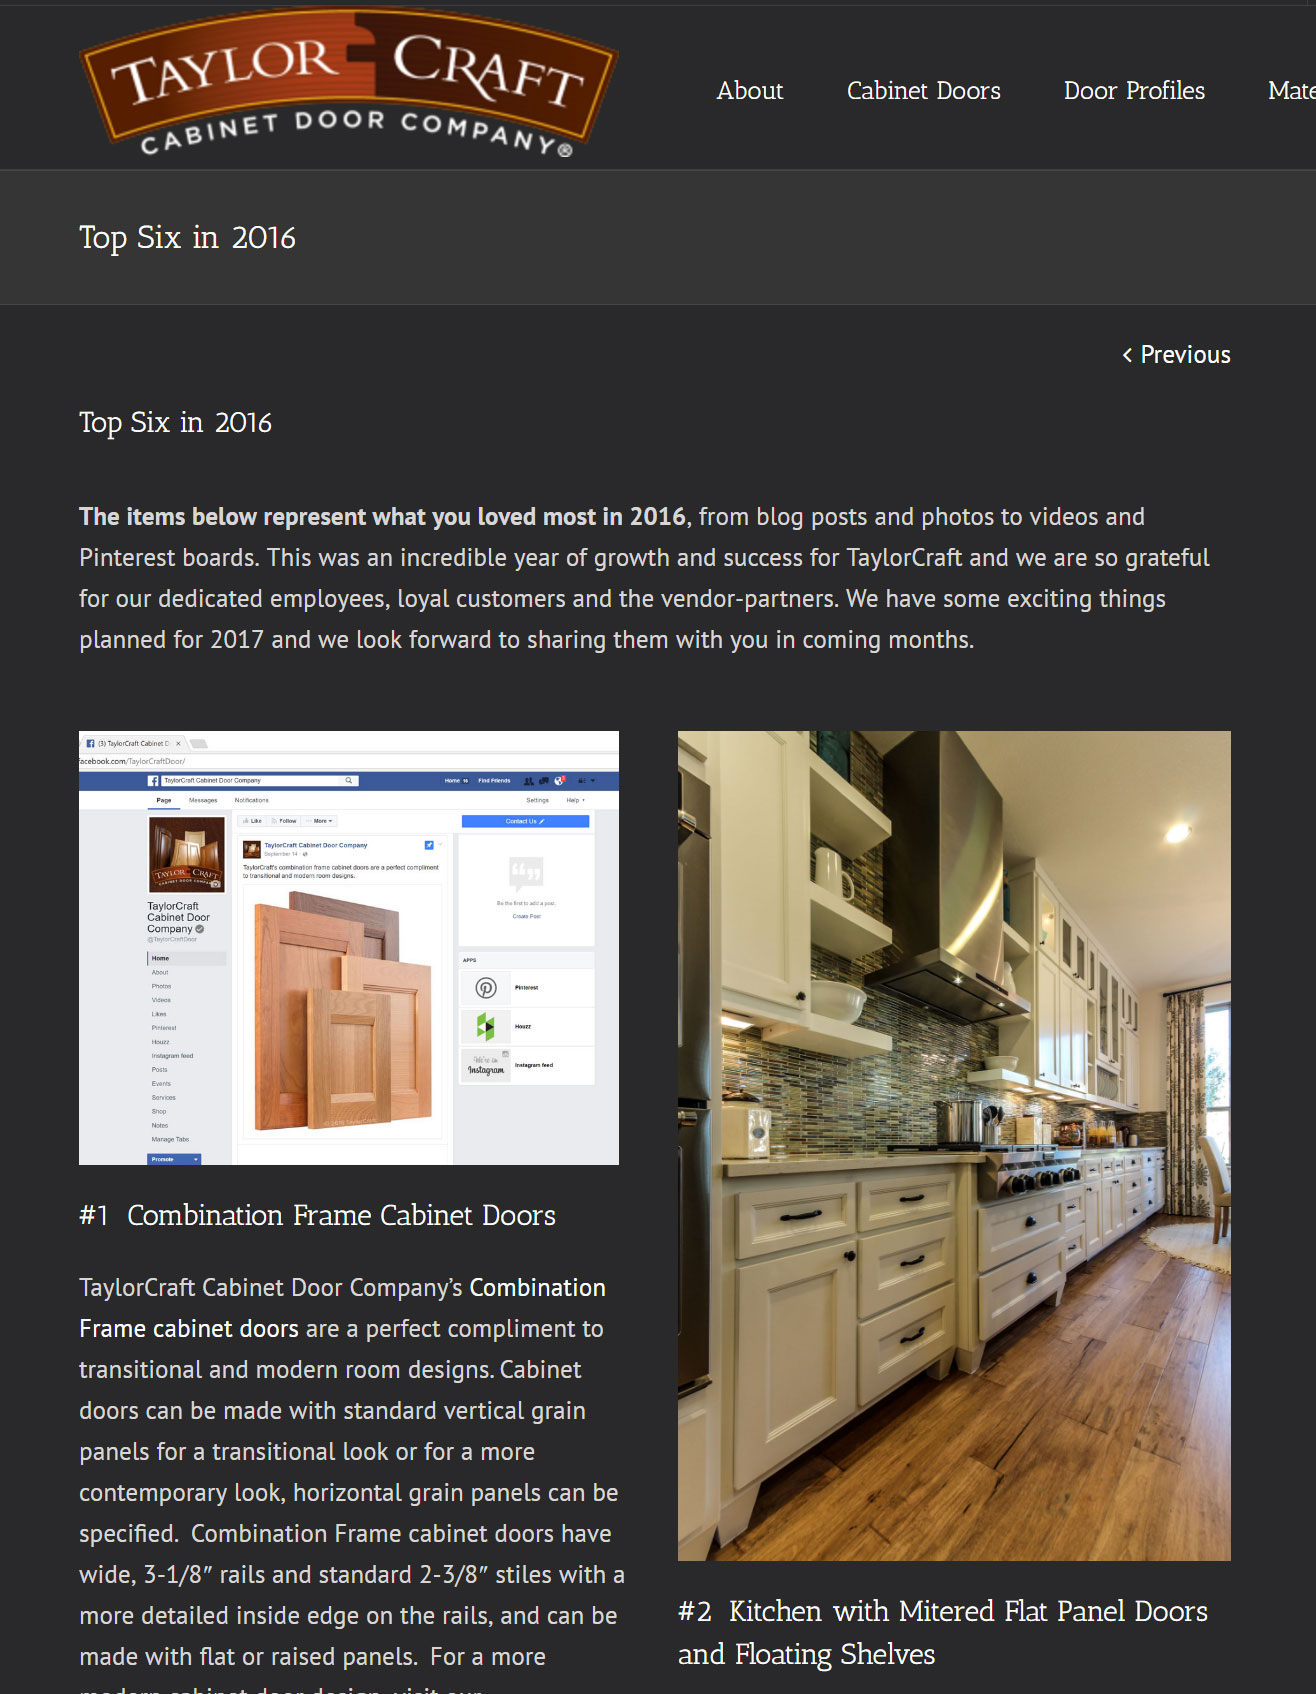 TaylorCraft Cabinet Door Company's top 6 posts in 2016